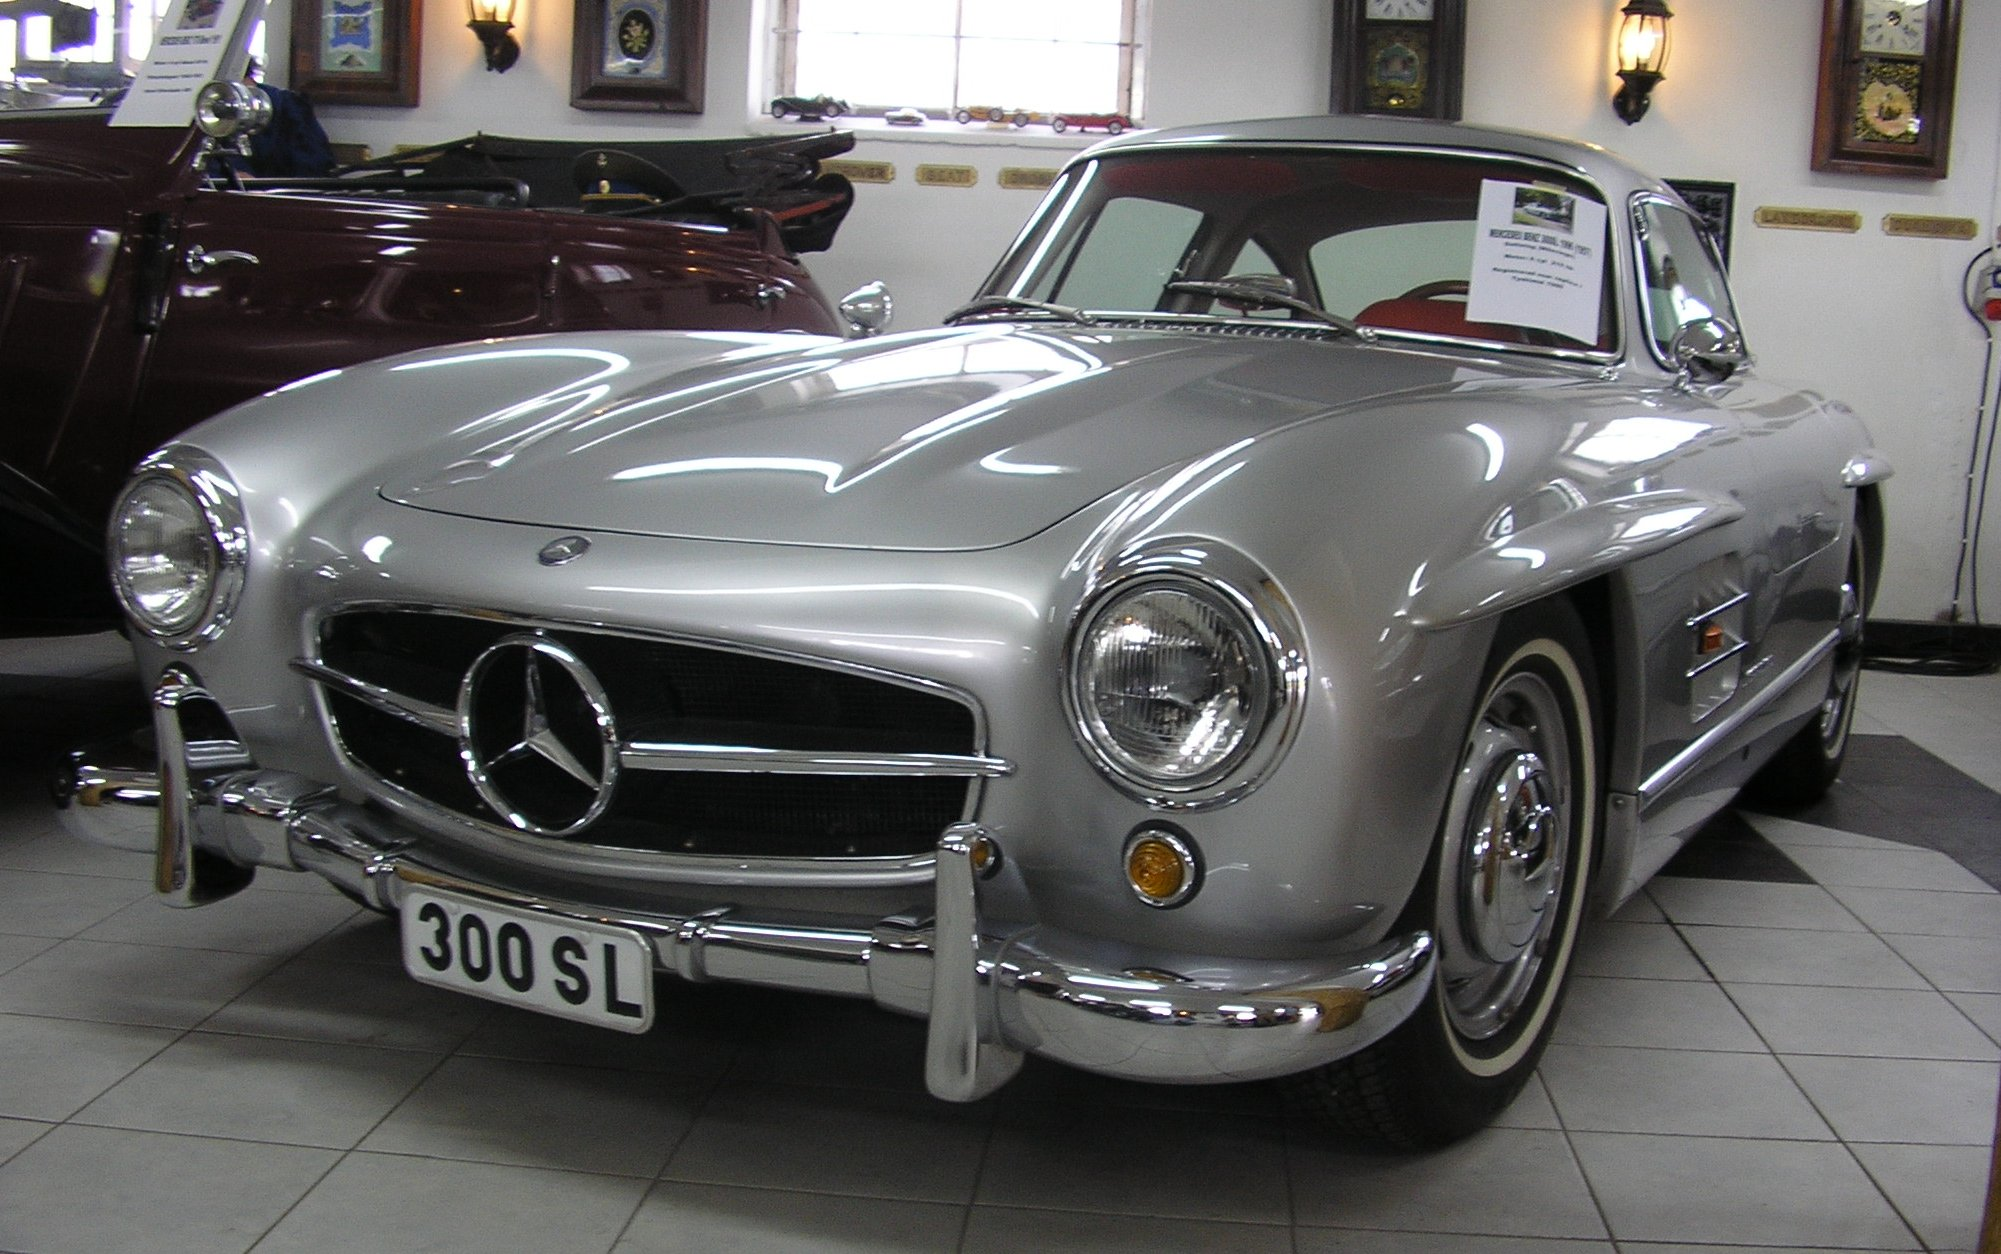 Replica ???? File Mb300sl Replica Jpg Wikimedia Commons